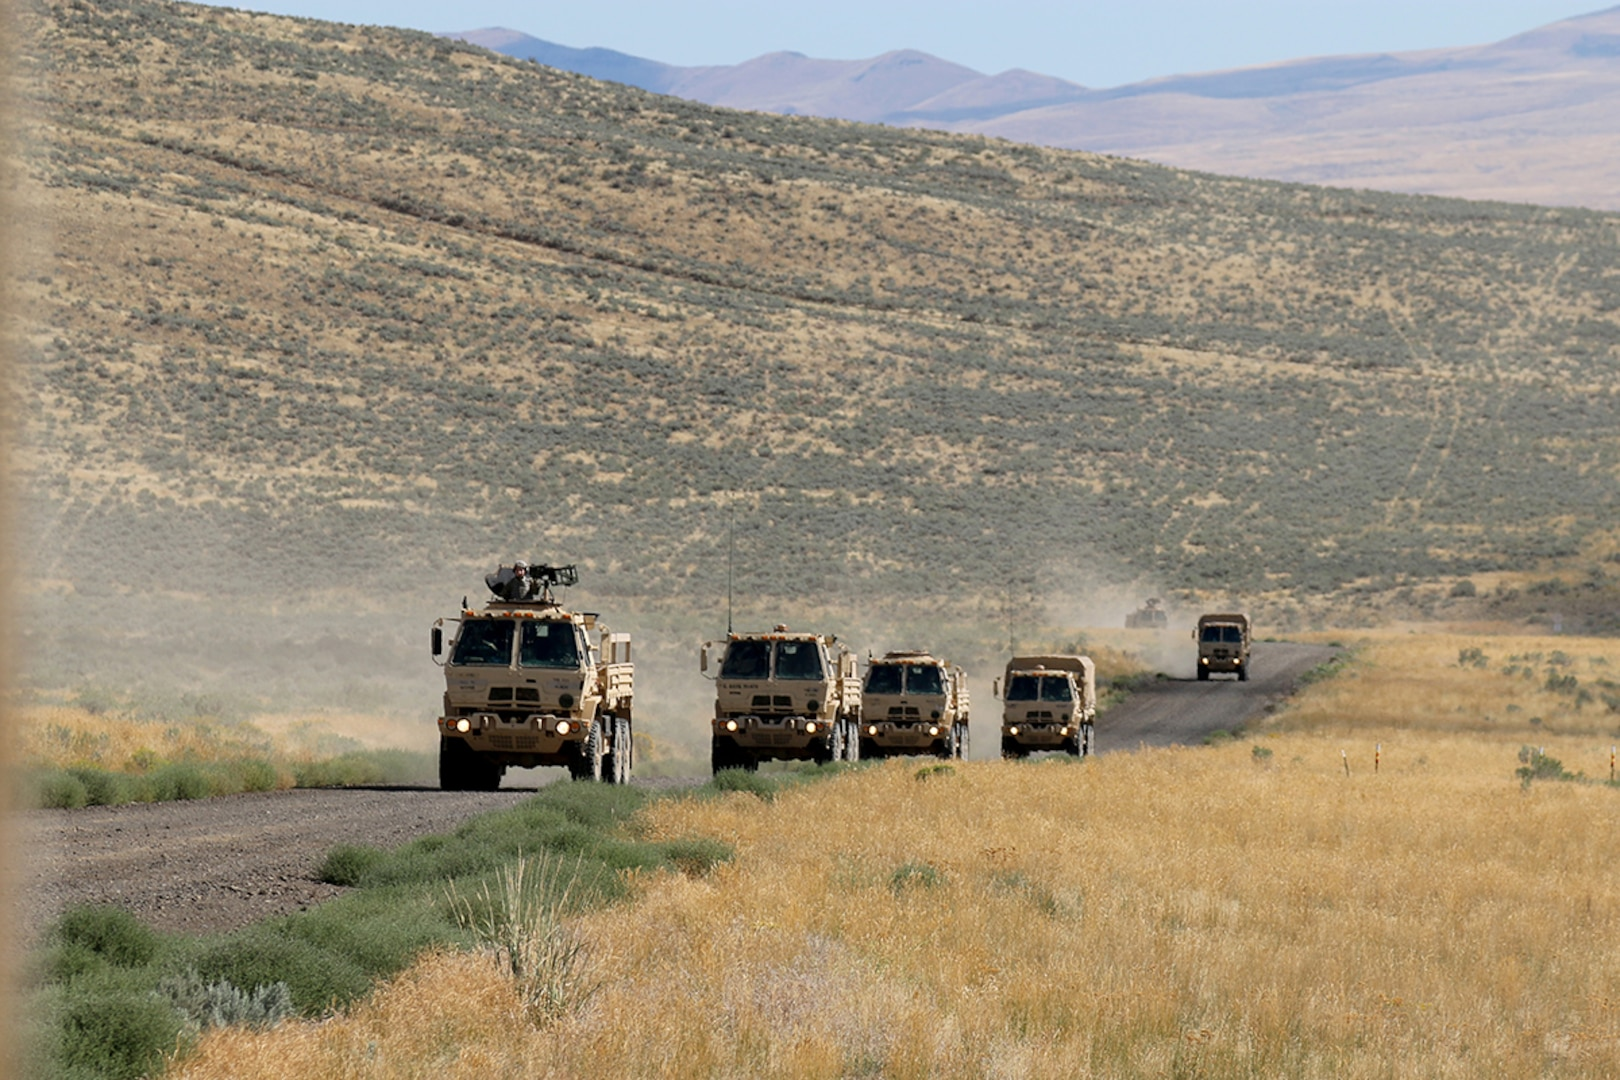 Illinois Army National Guard Soldiers from the 1844th Transportation Company convoy to their IED lane training as part of Rising Thunder 2019